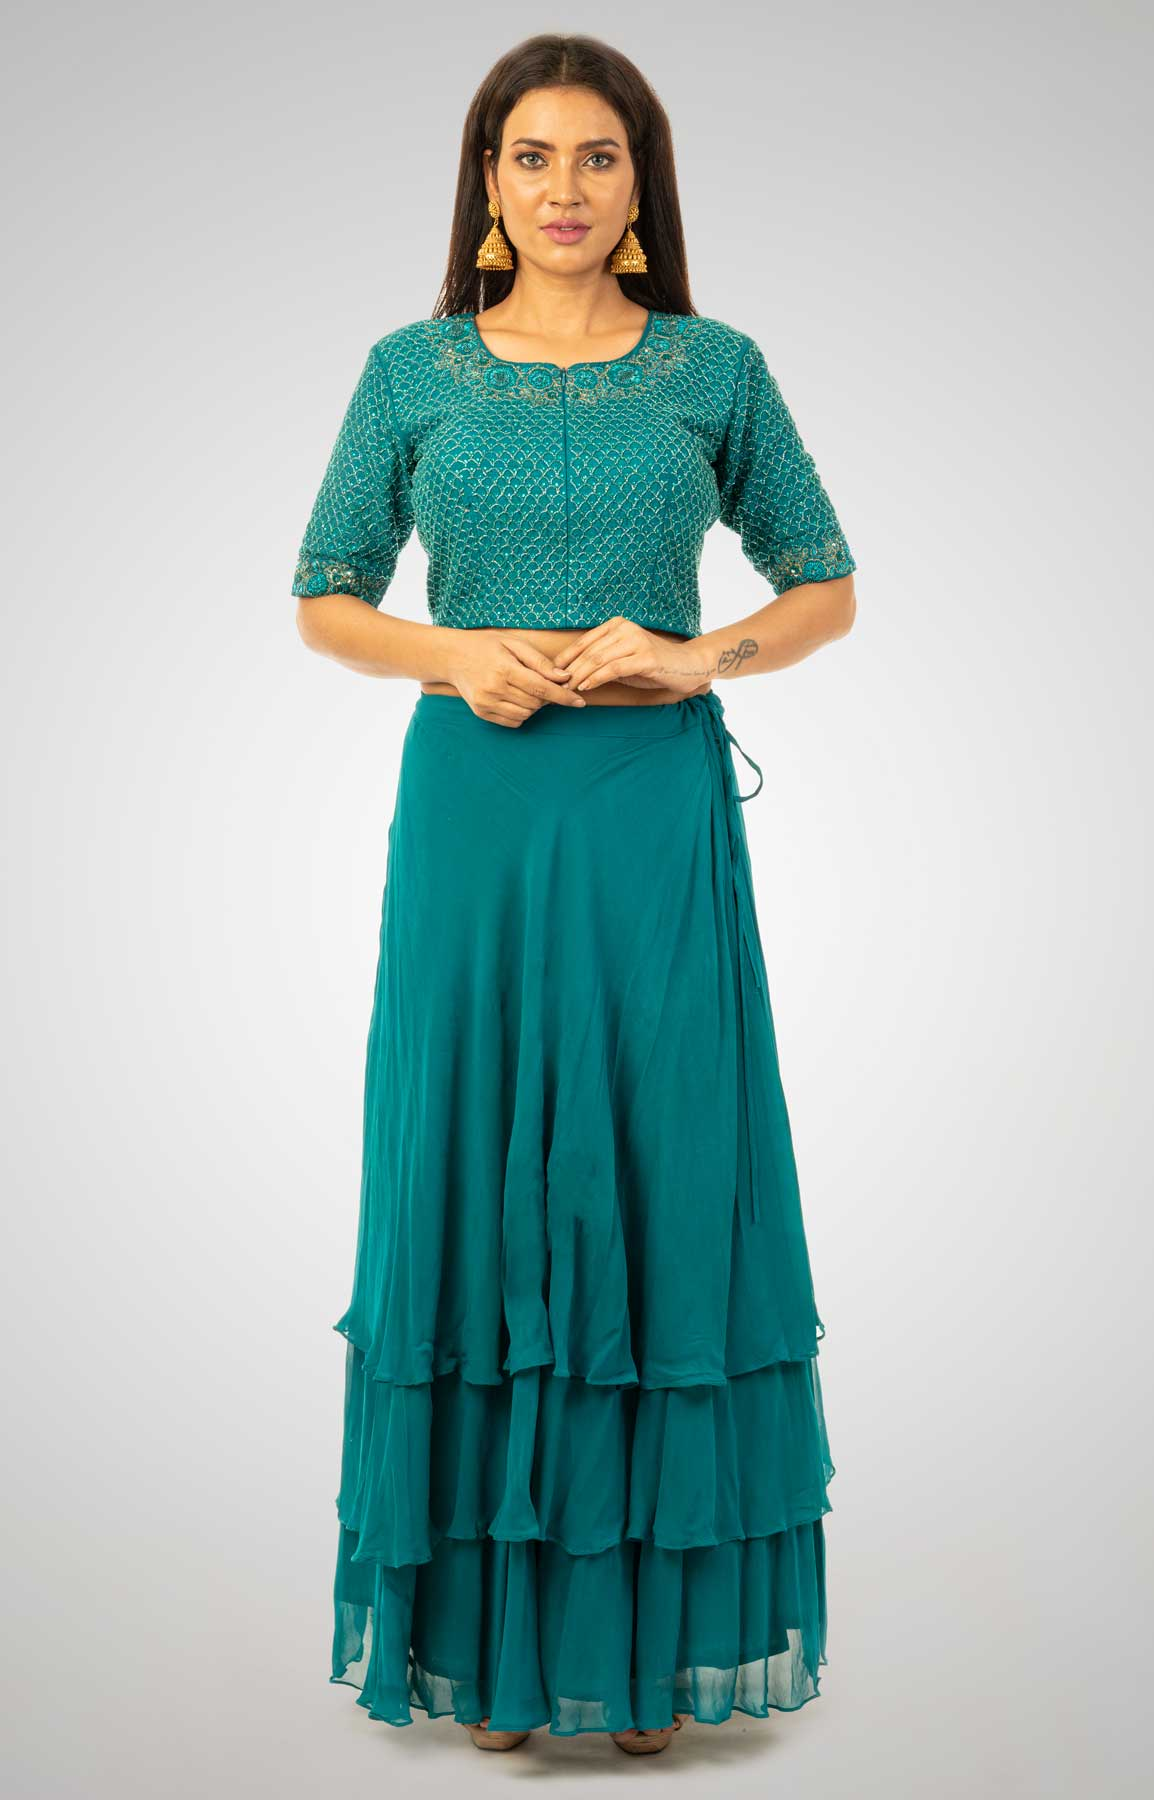 Peacock Tiered Georgette Skirt Matched with Cut Dana Embroidered Crop Top – Viraaya By Ushnakmals